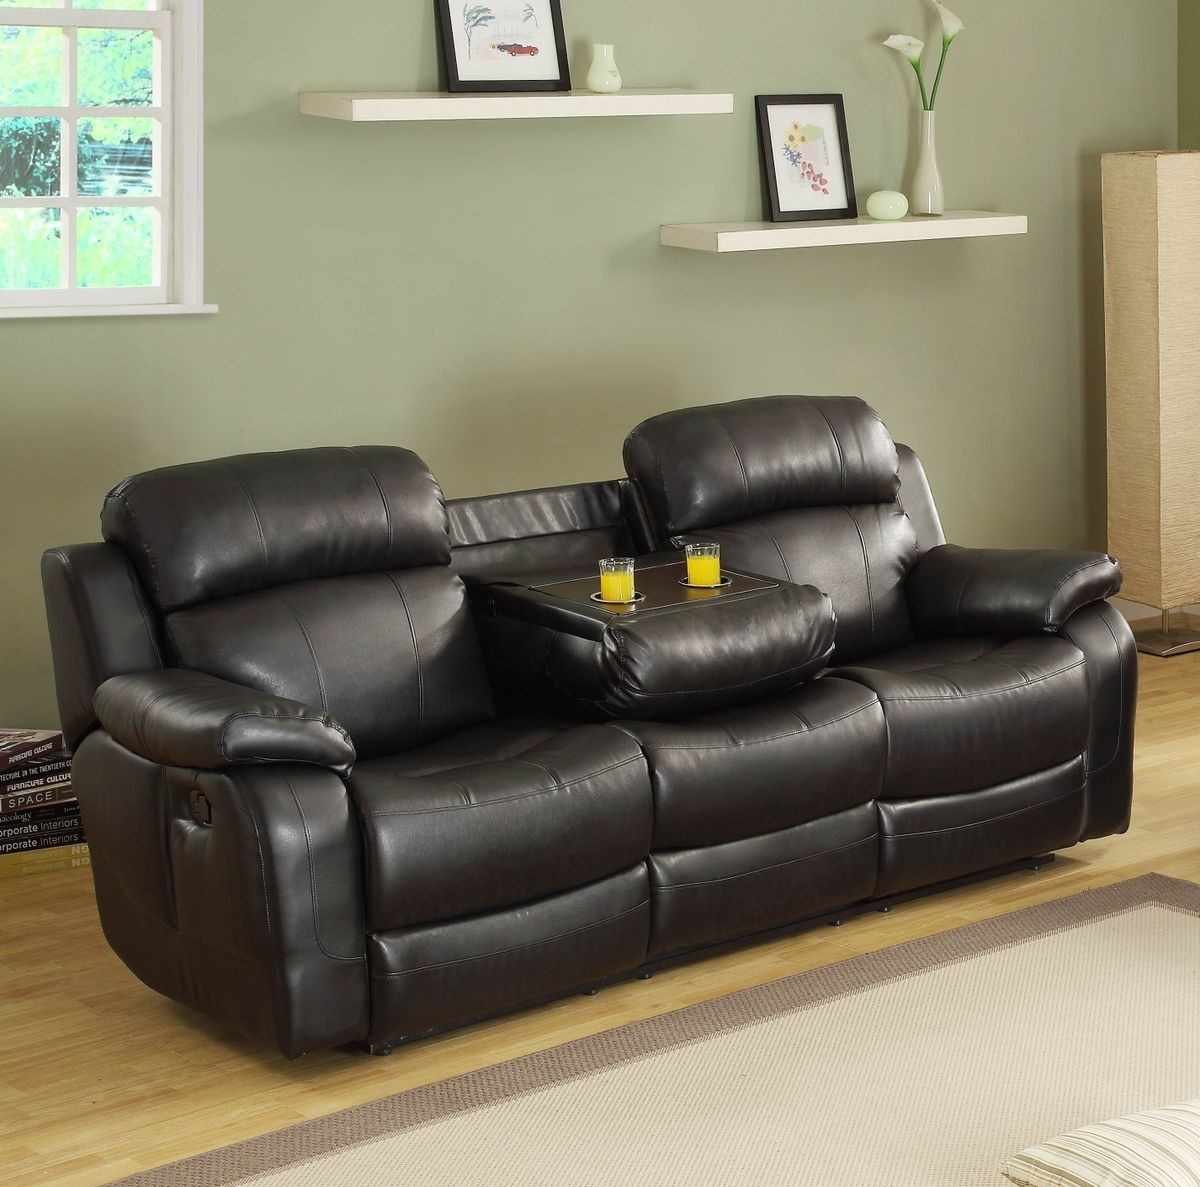 Homelegance Marille Double Reclining Sofa W Center Drop Down Cup Holders In Black Leather